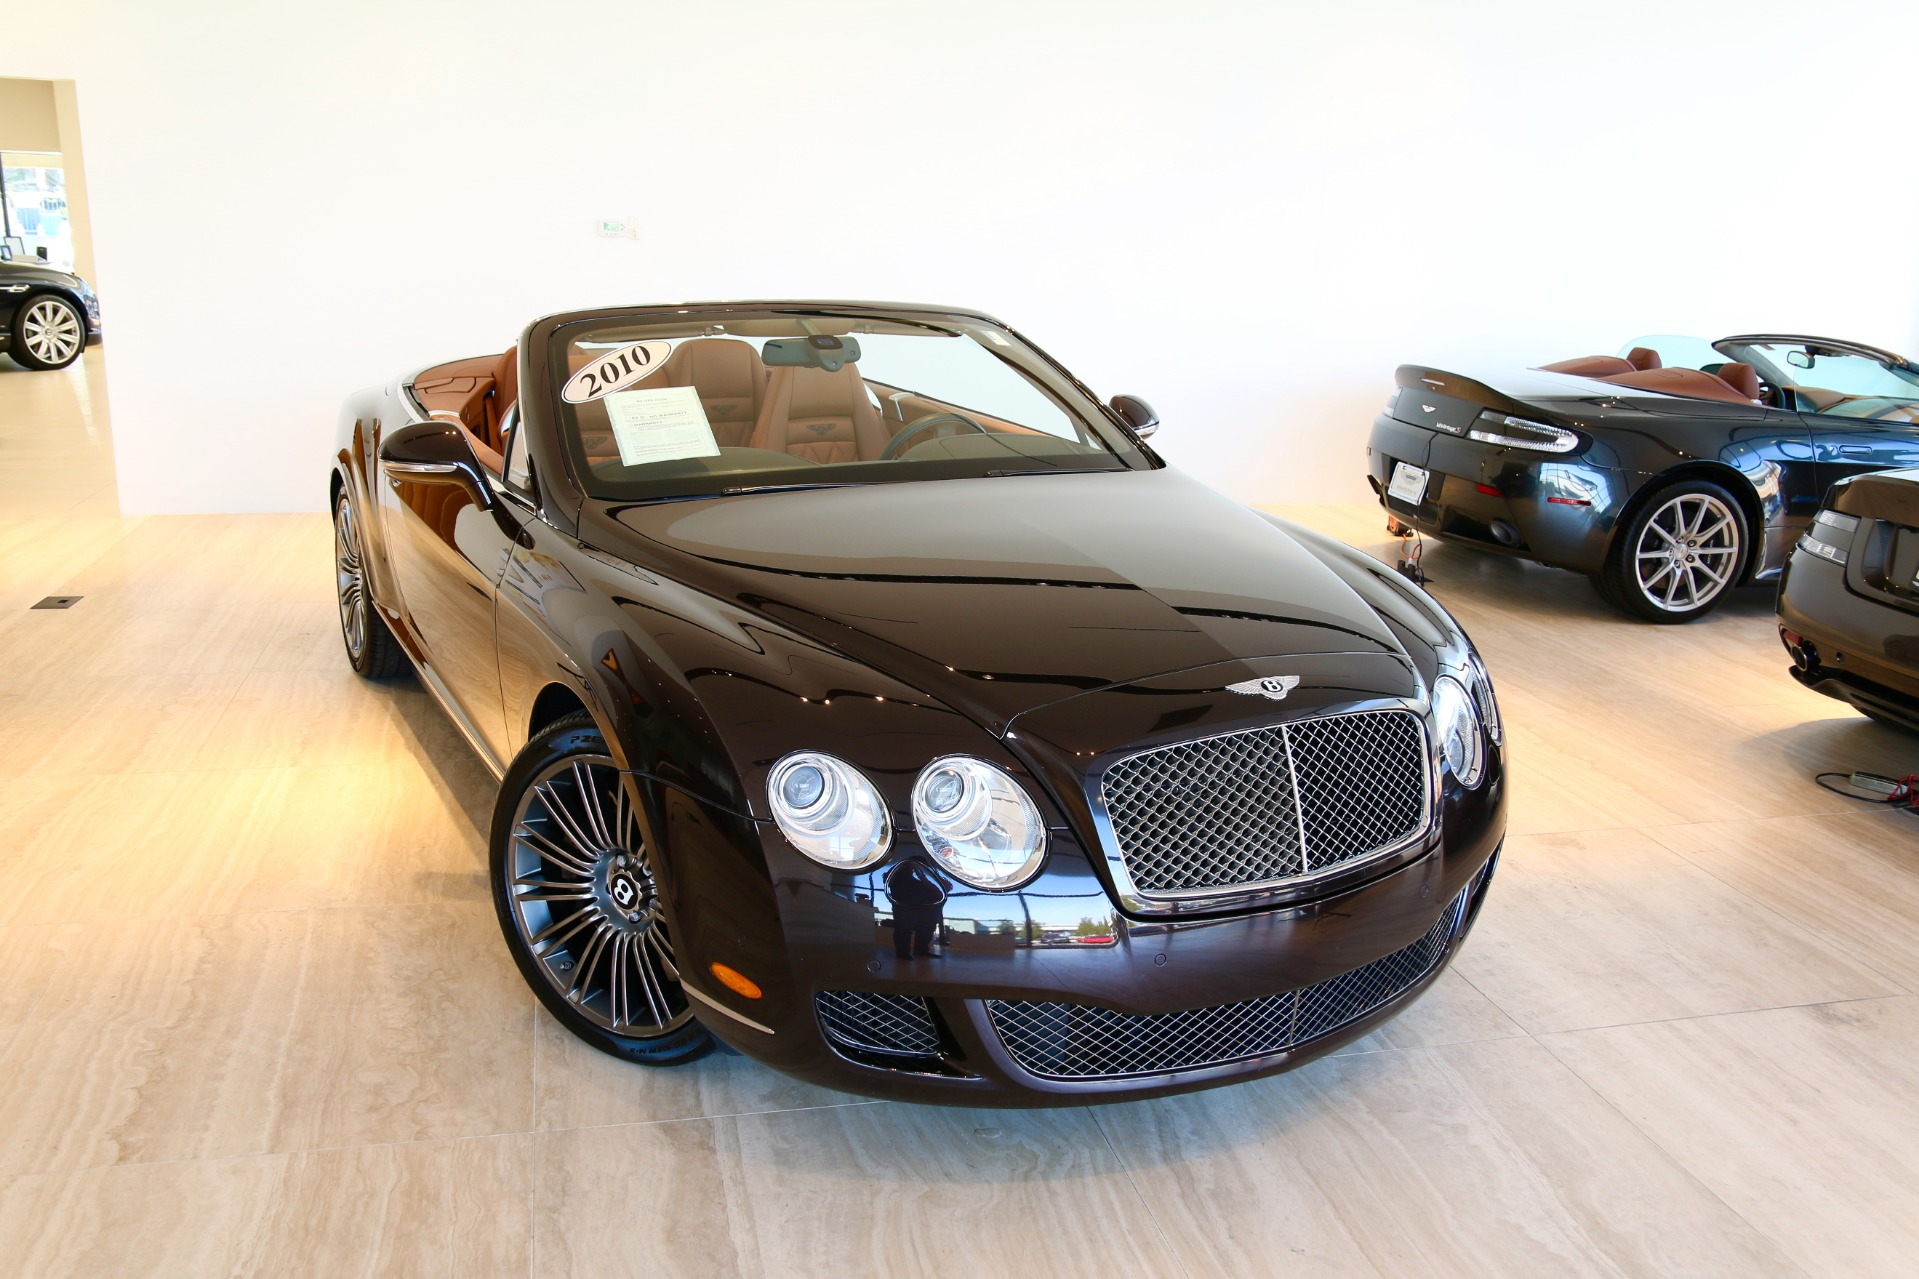 sale pre speed used va cars stock vienna gtc htm for near owned continental main c l bentley